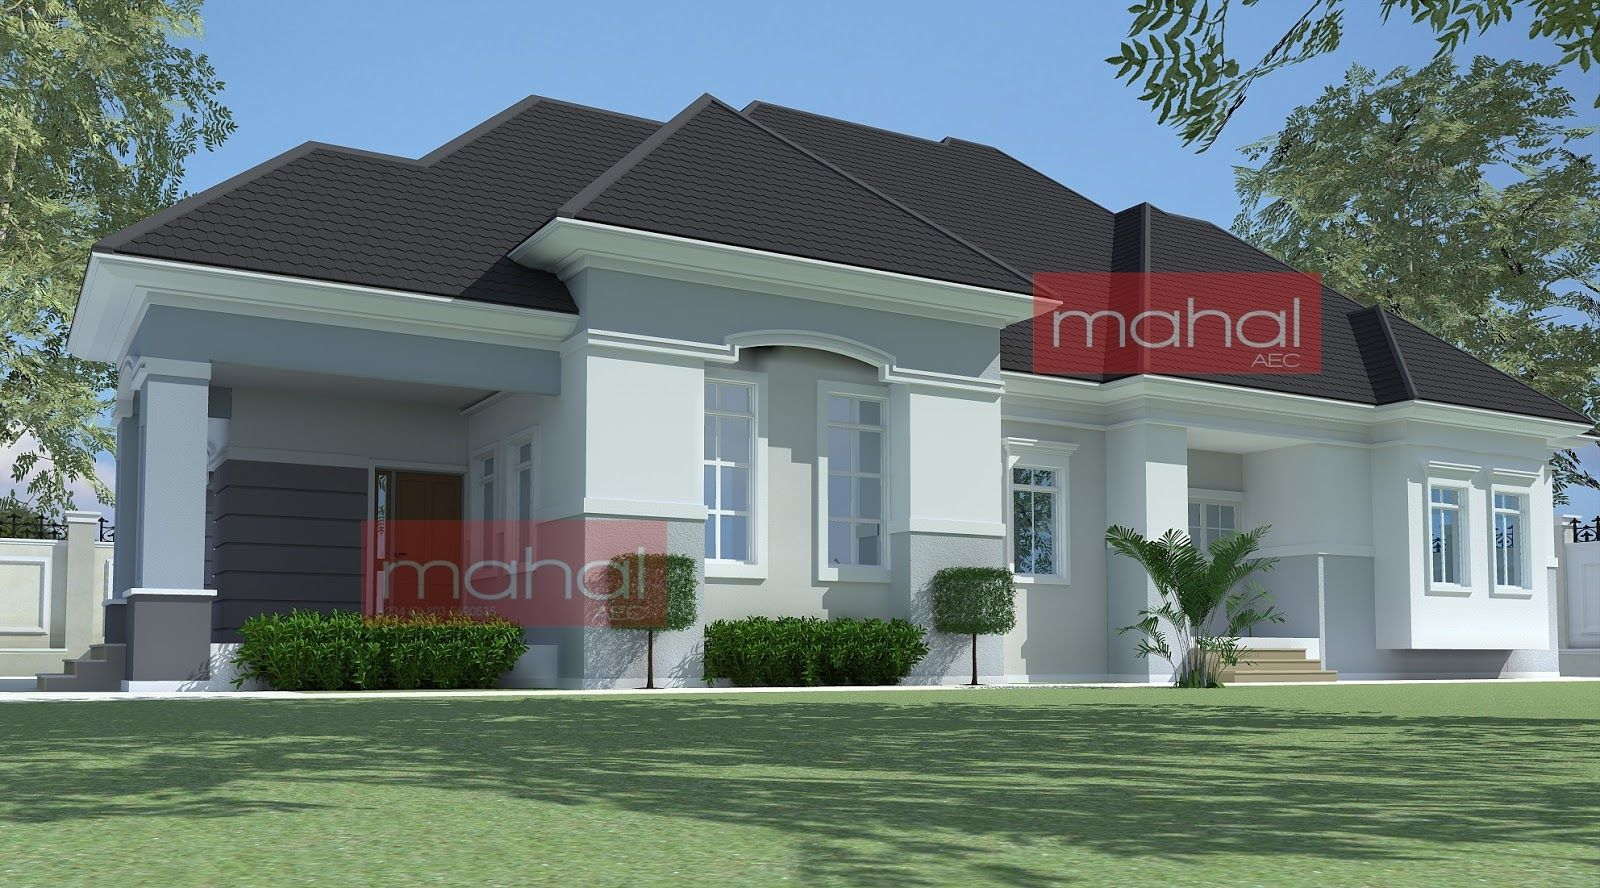 4 bedroom bungalow plan in nigeria 4 bedroom bungalow house plans nigerian design hot Design home free